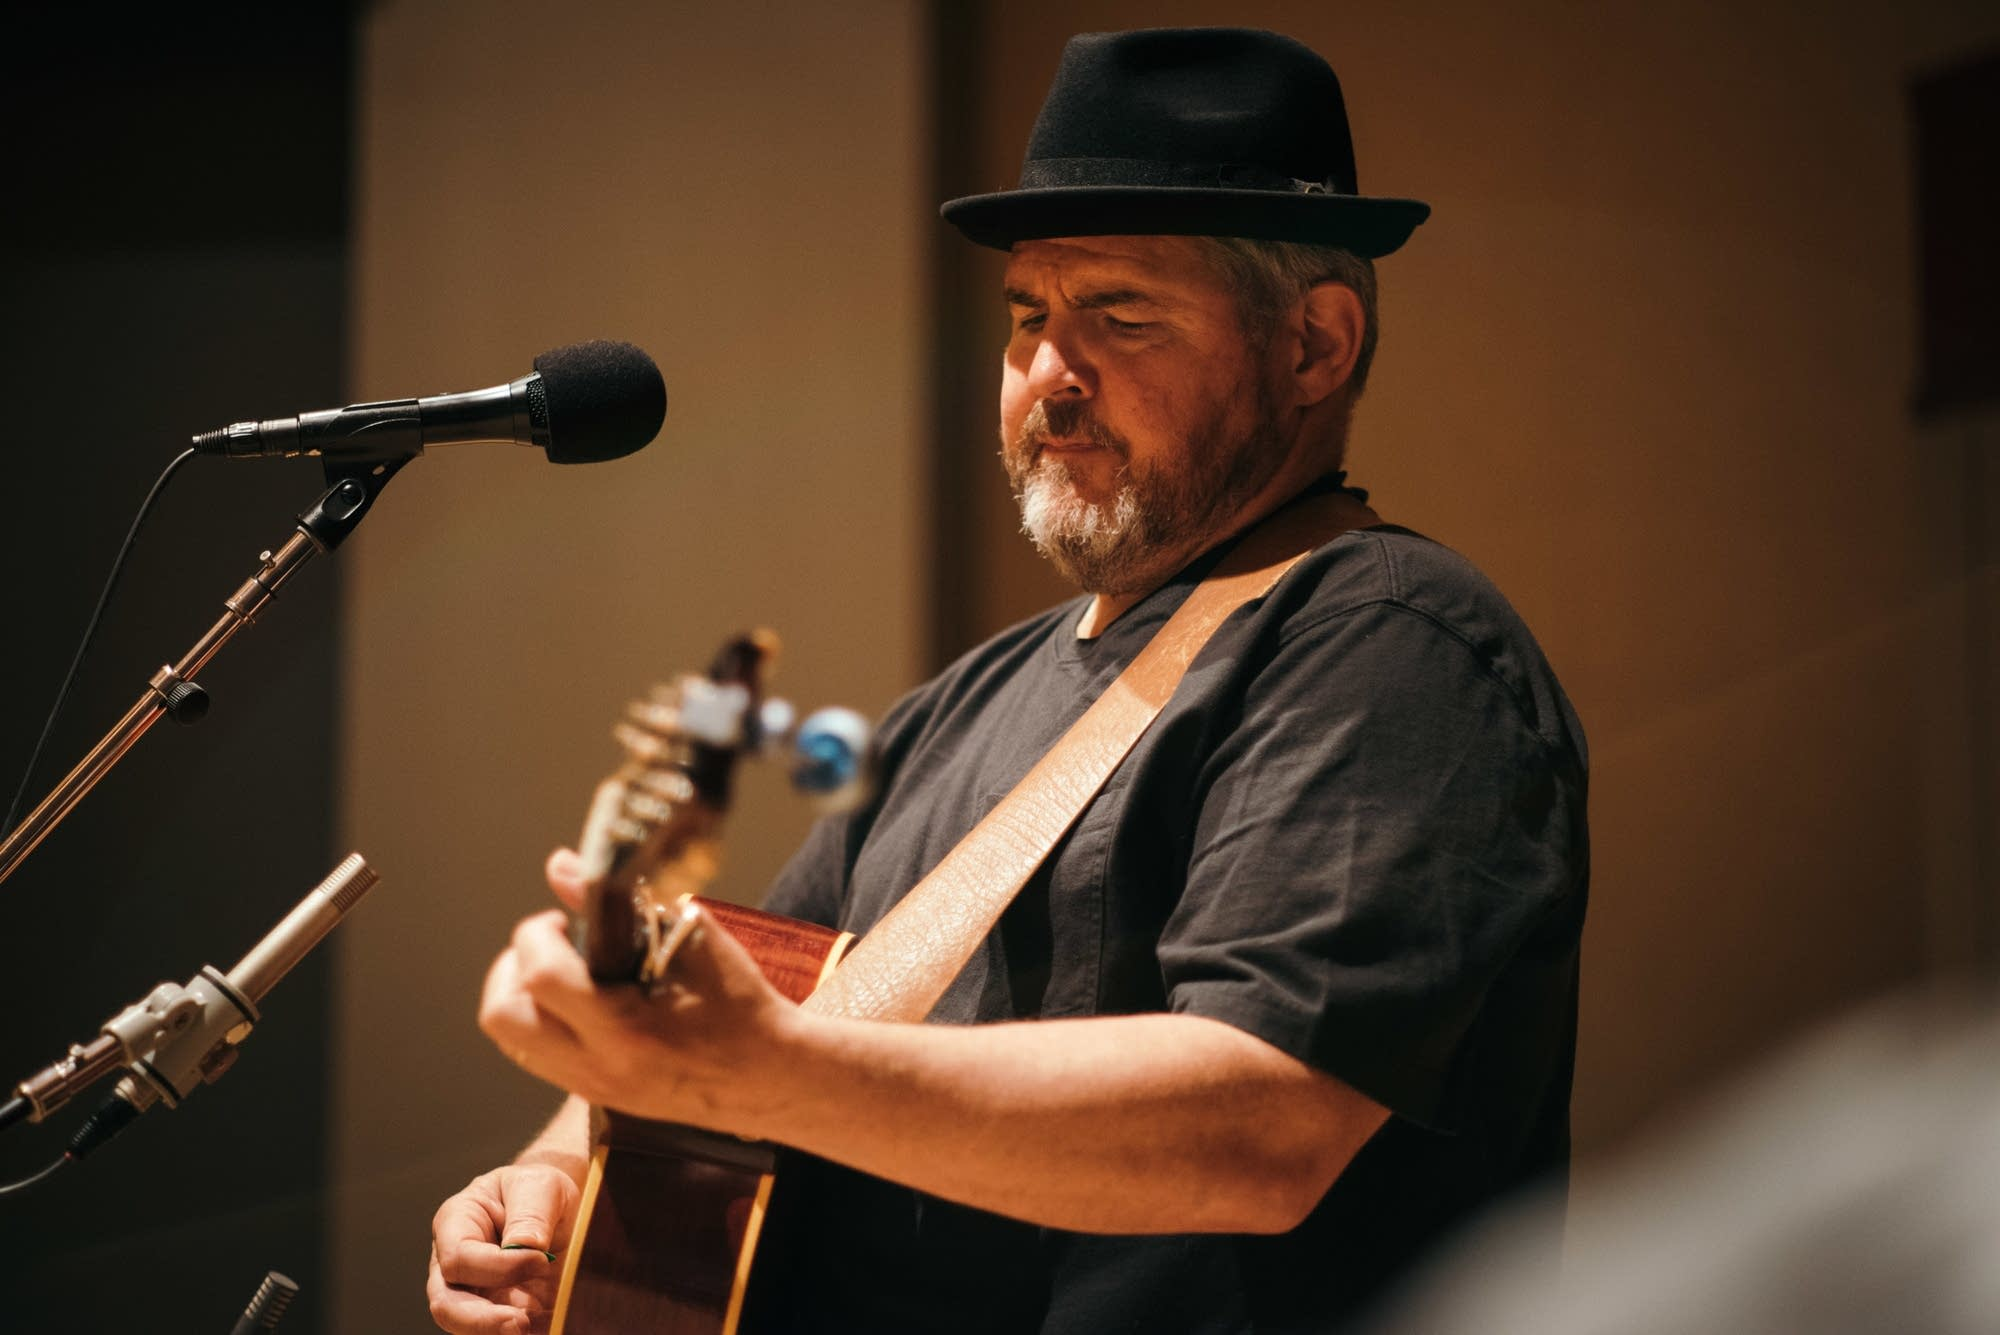 John Louis performs in the Radio Heartland studio